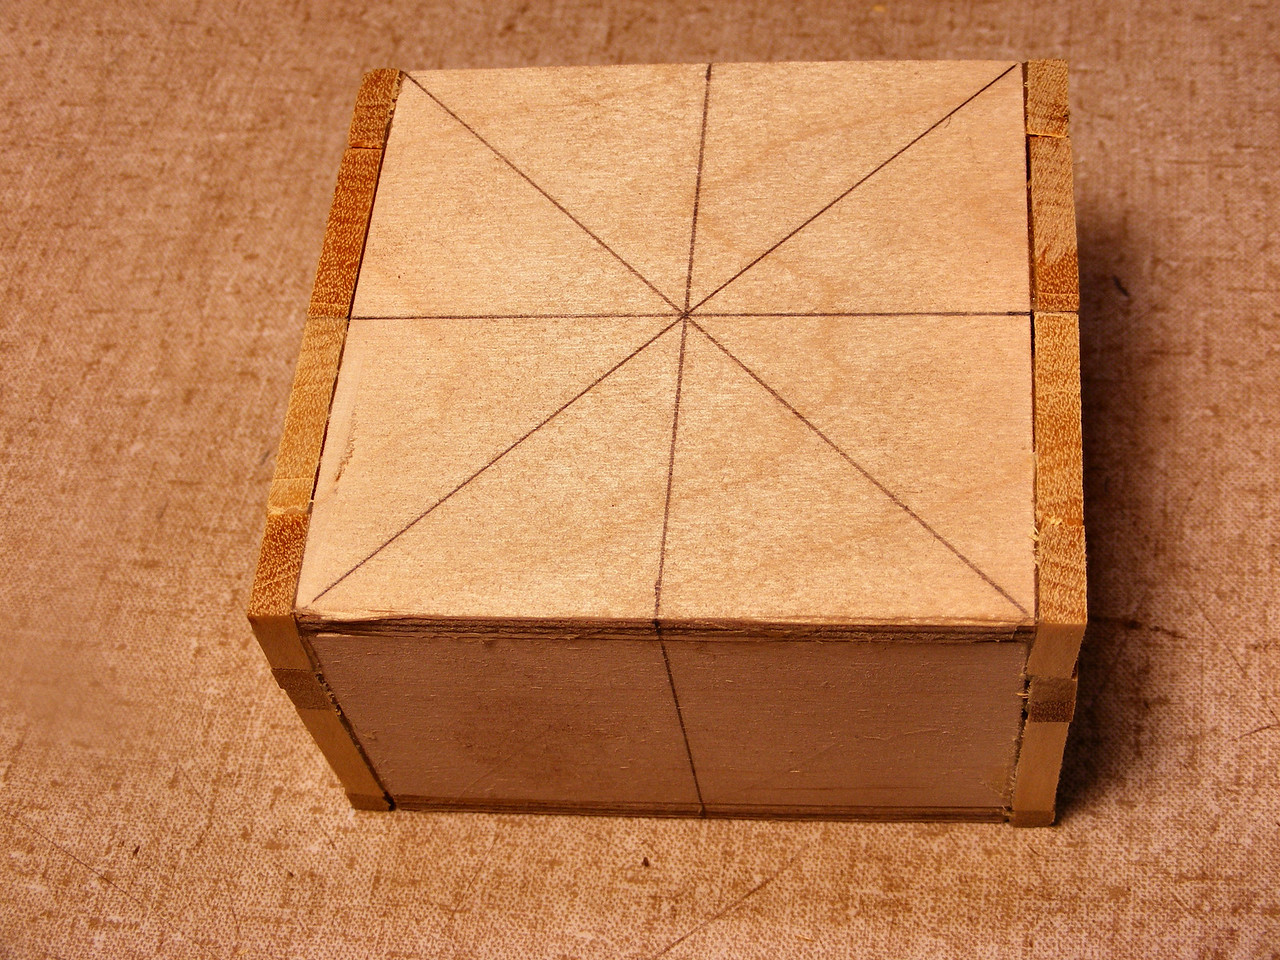 #15 Making a Tiny Sq Box<br /> So that the box is now like this.